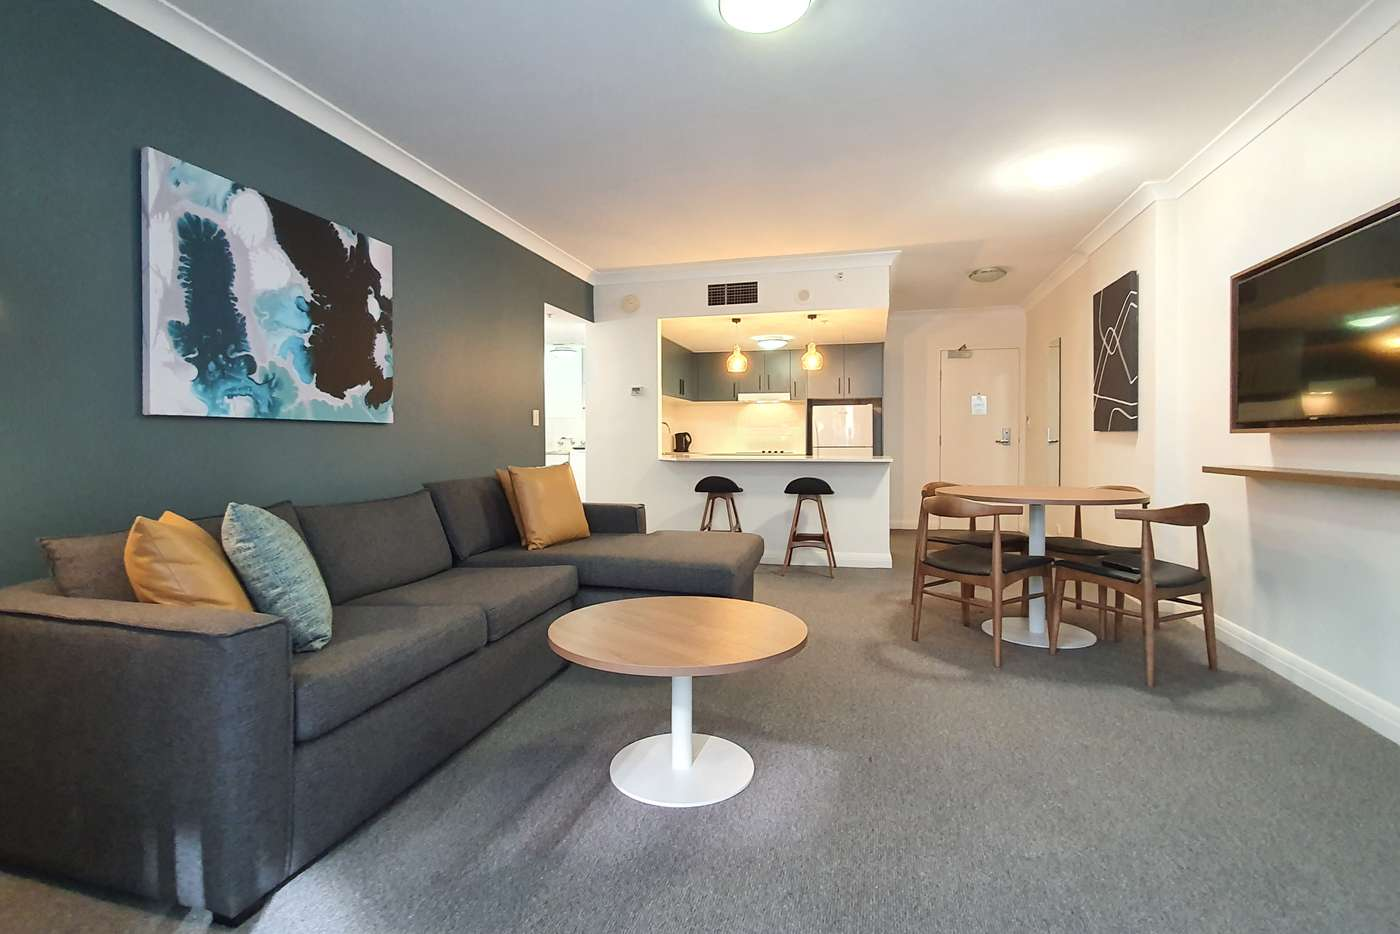 Main view of Homely apartment listing, 617/10 Brown Street, Chatswood NSW 2067